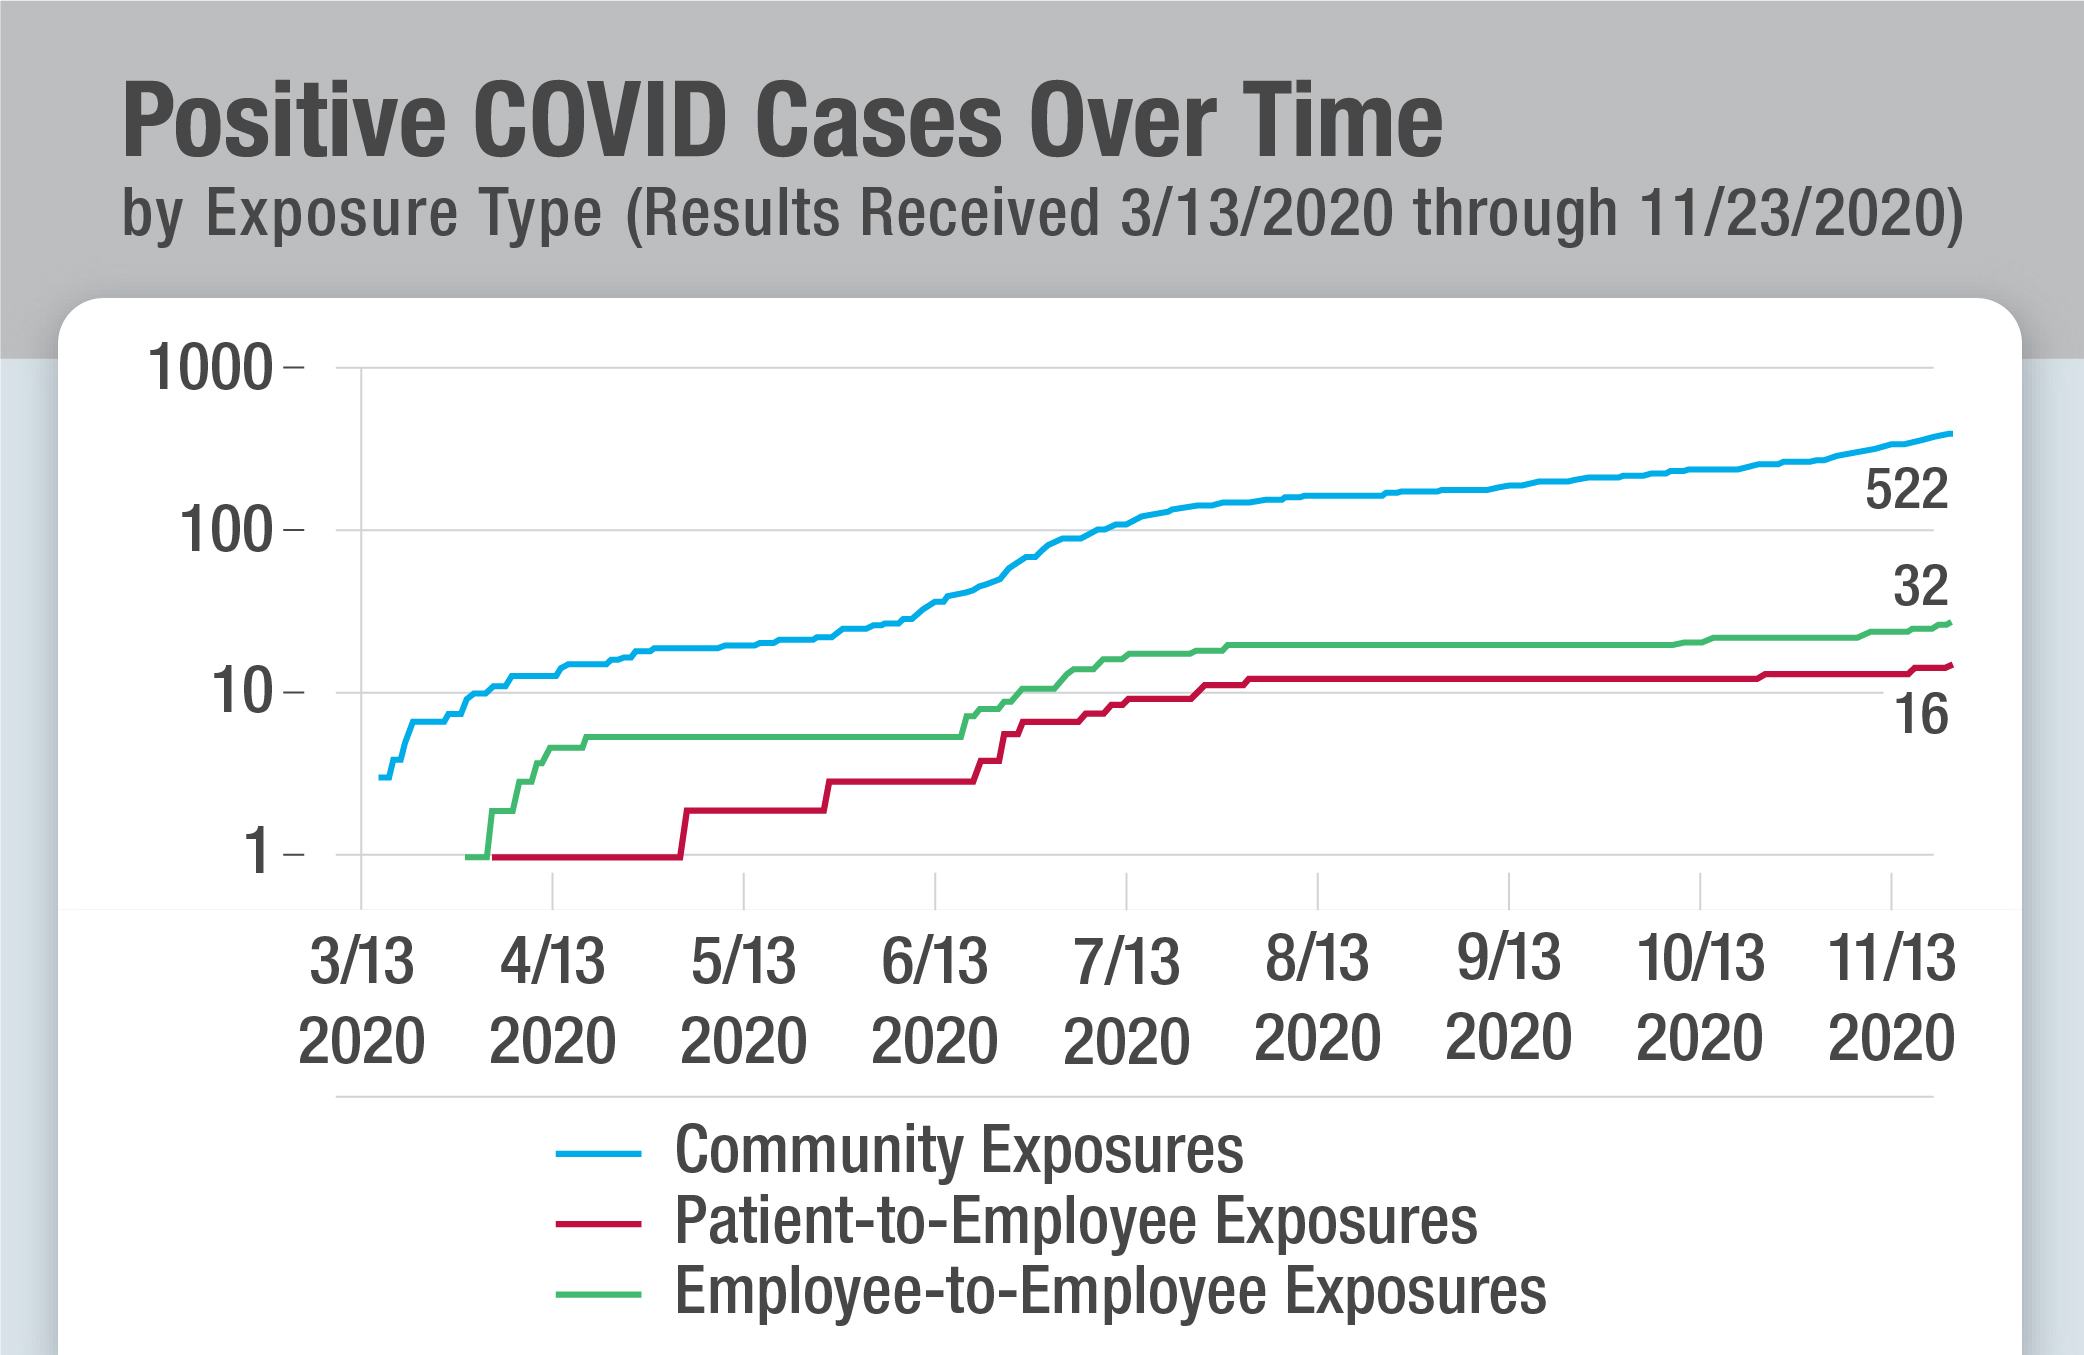 Positive COVID Cases Over Time Graphic